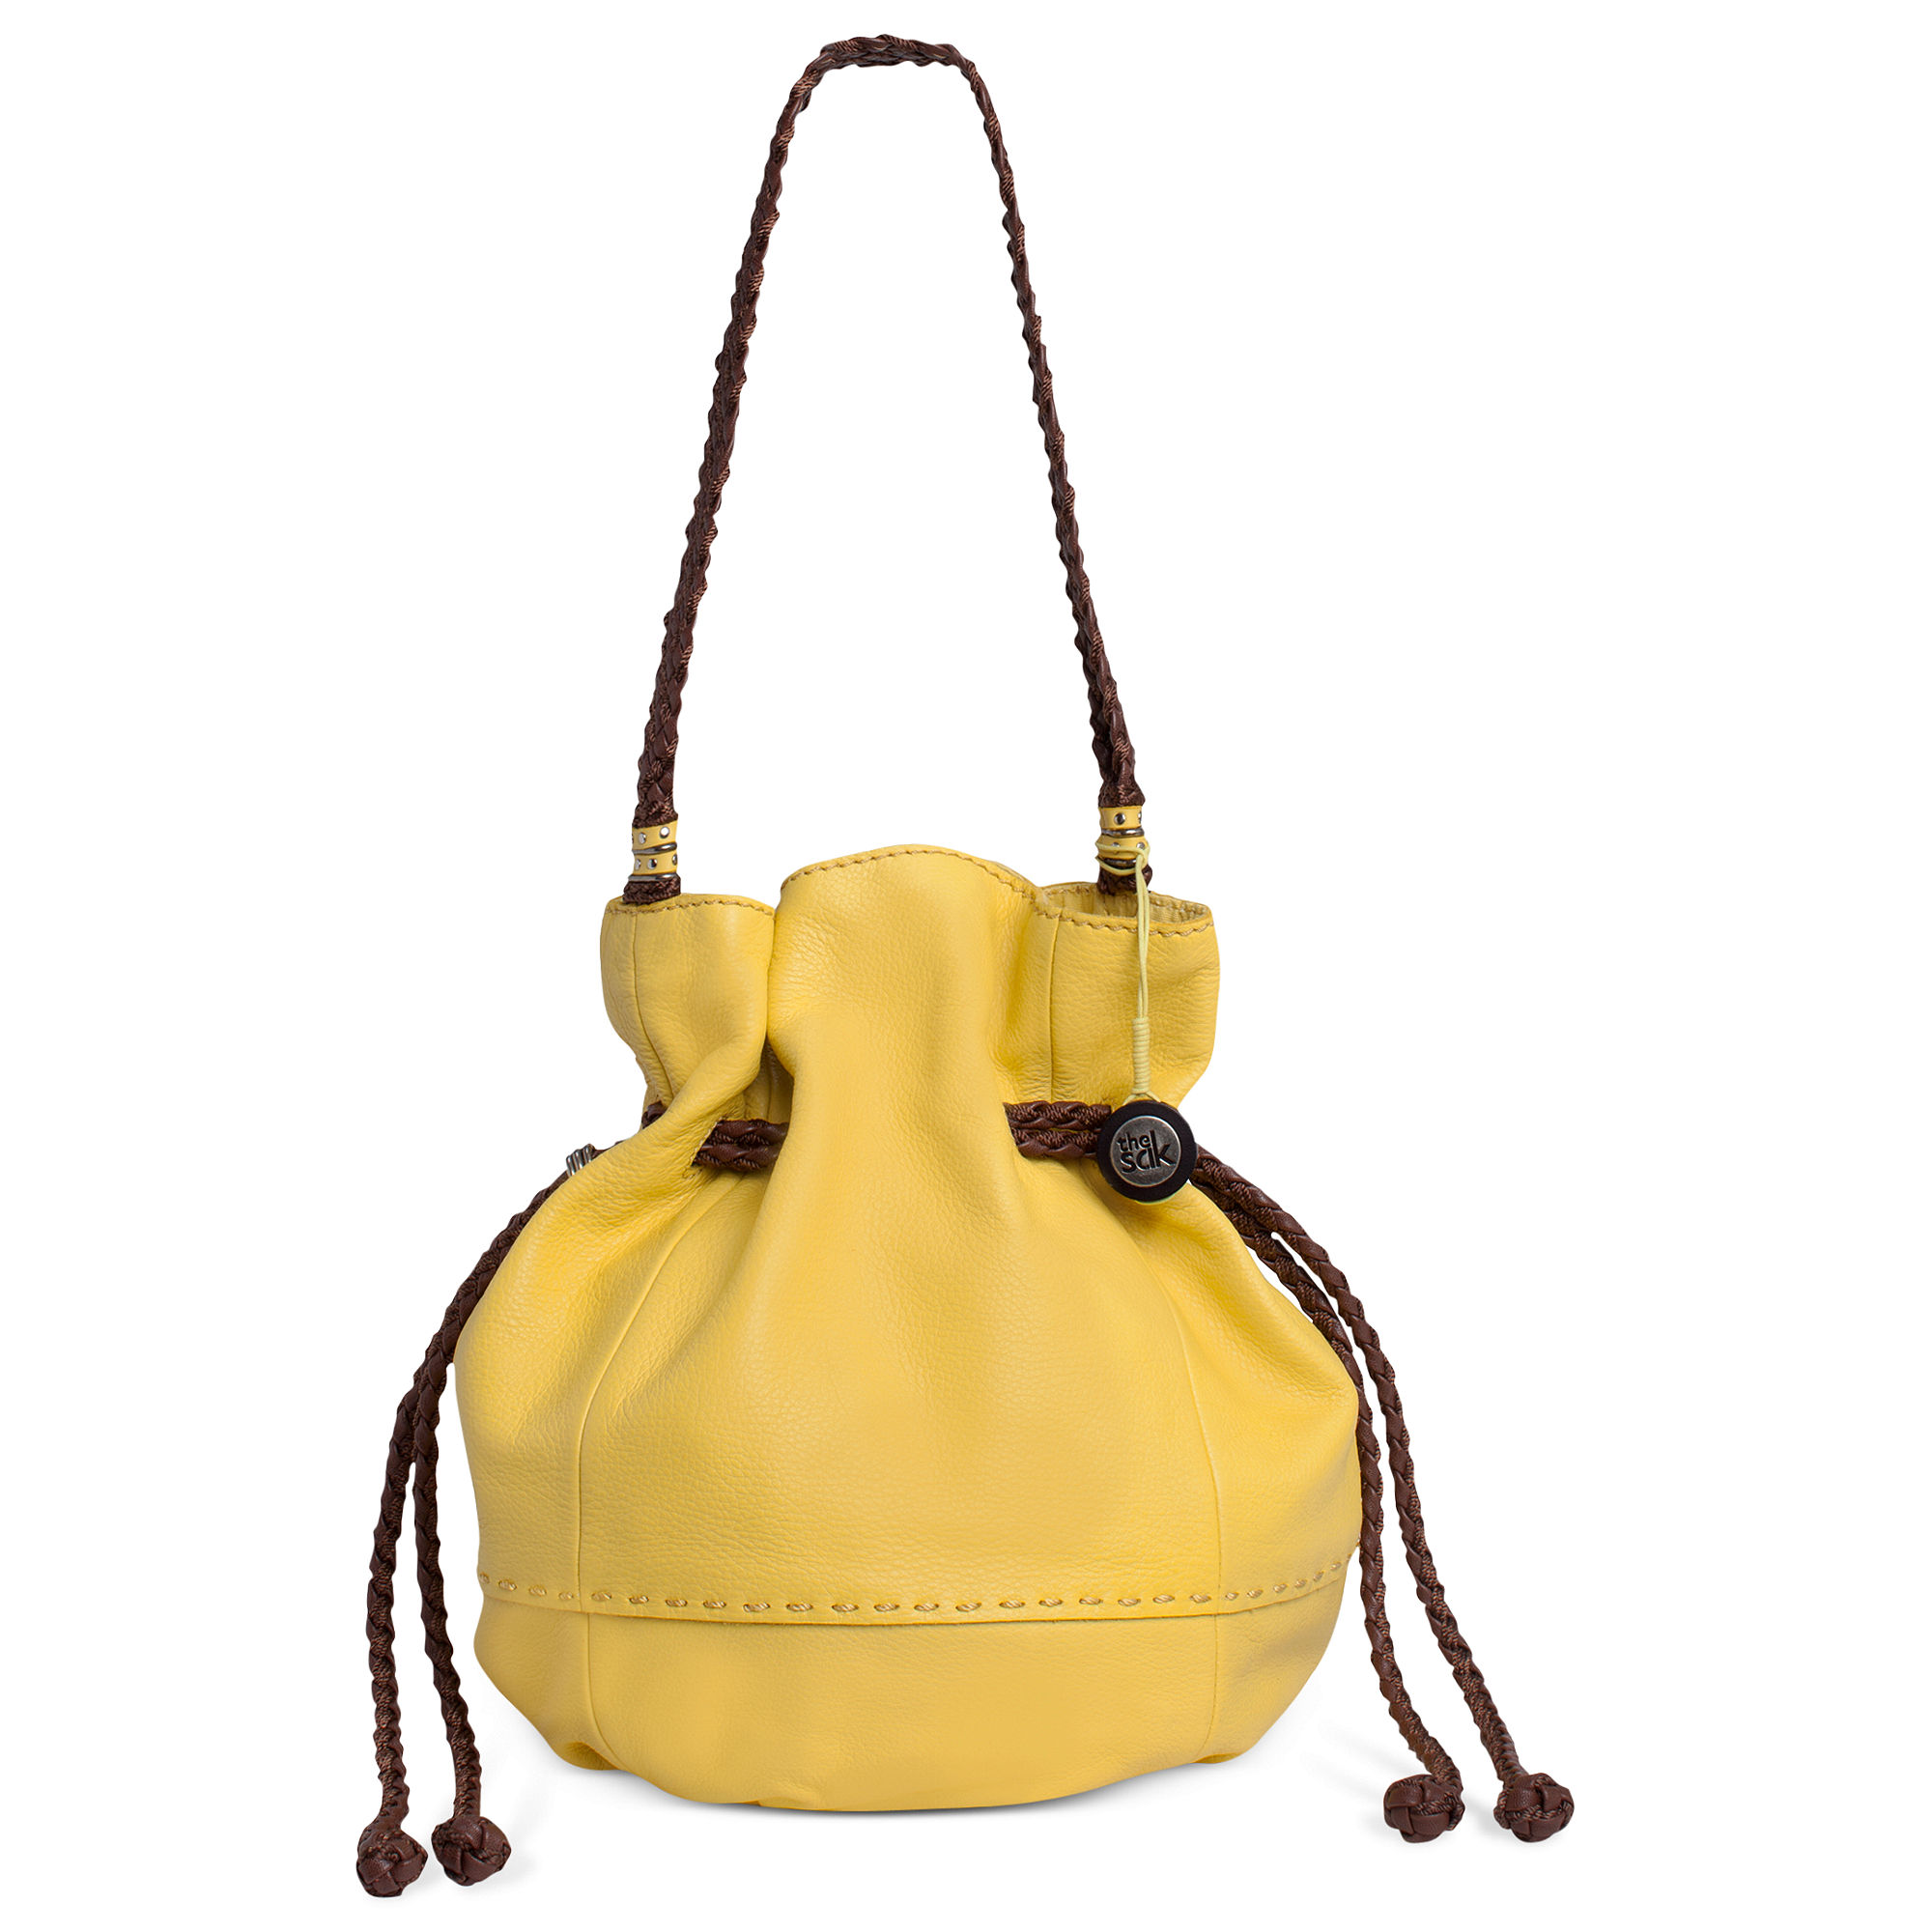 36b43de130 Lyst - The Sak Indio Leather Drawstring Bag in Yellow